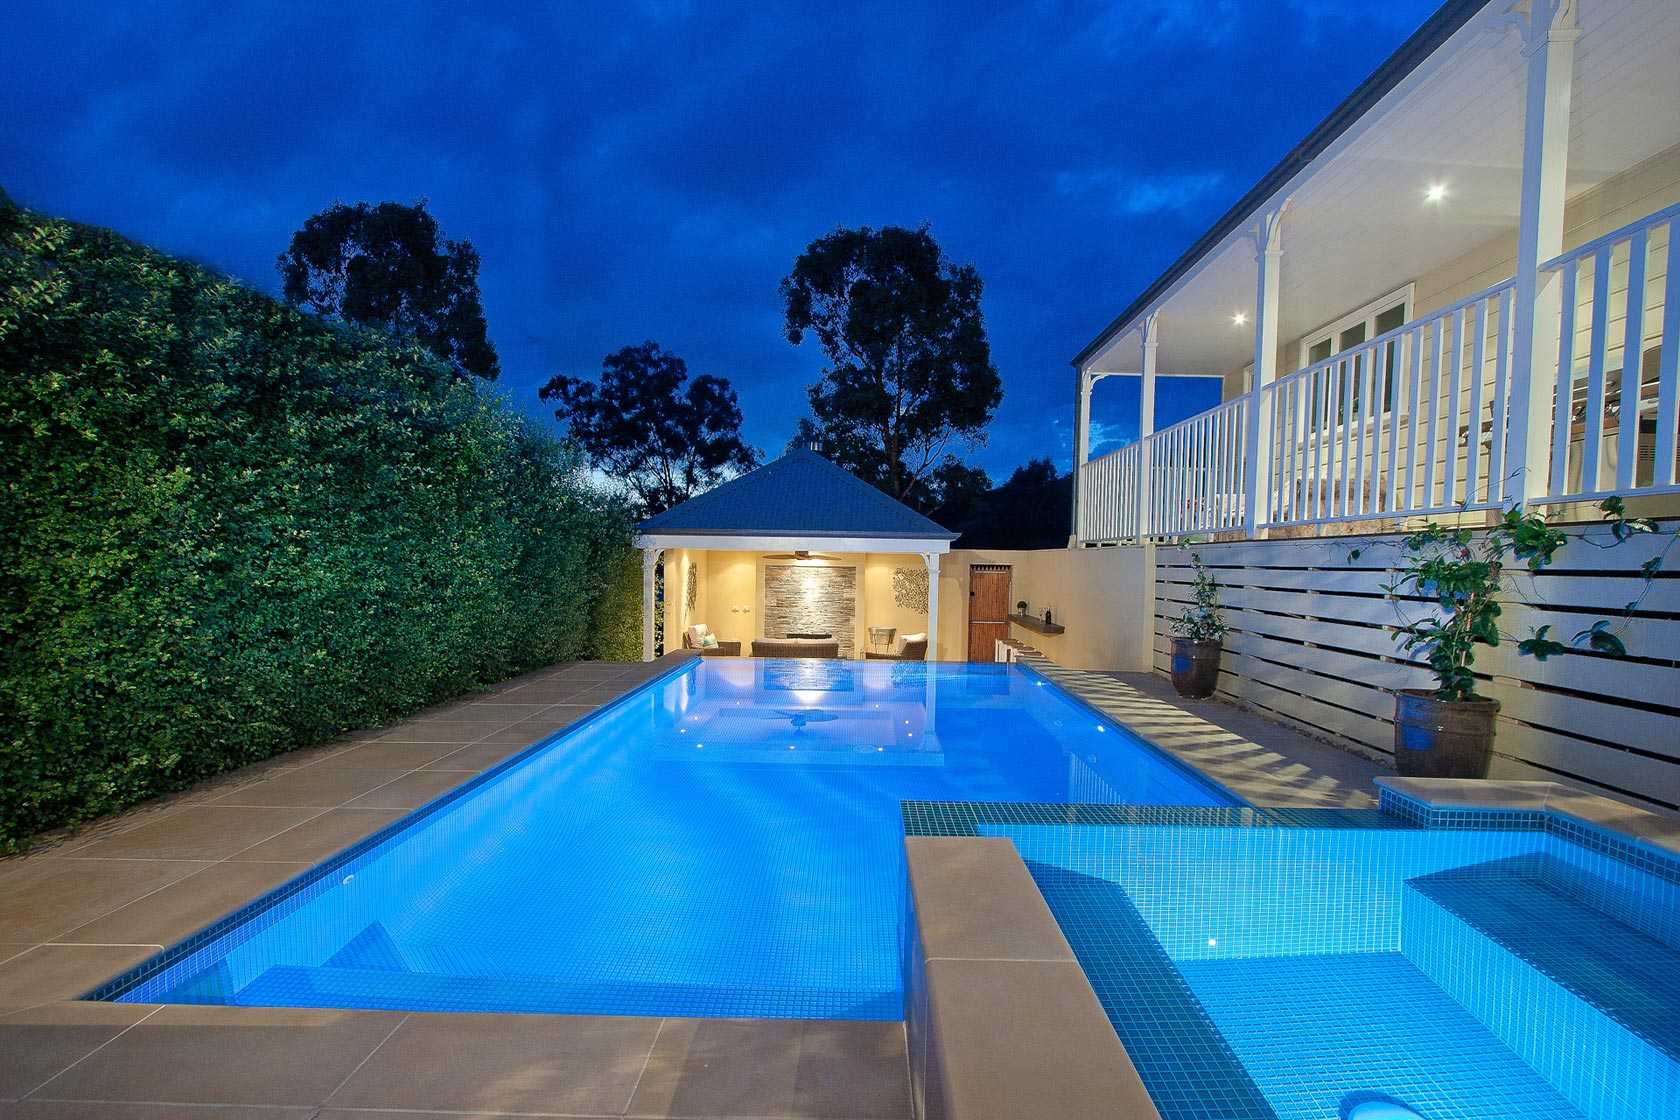 Landscape pool designs melbourne pdf - Landscape and pool design ...